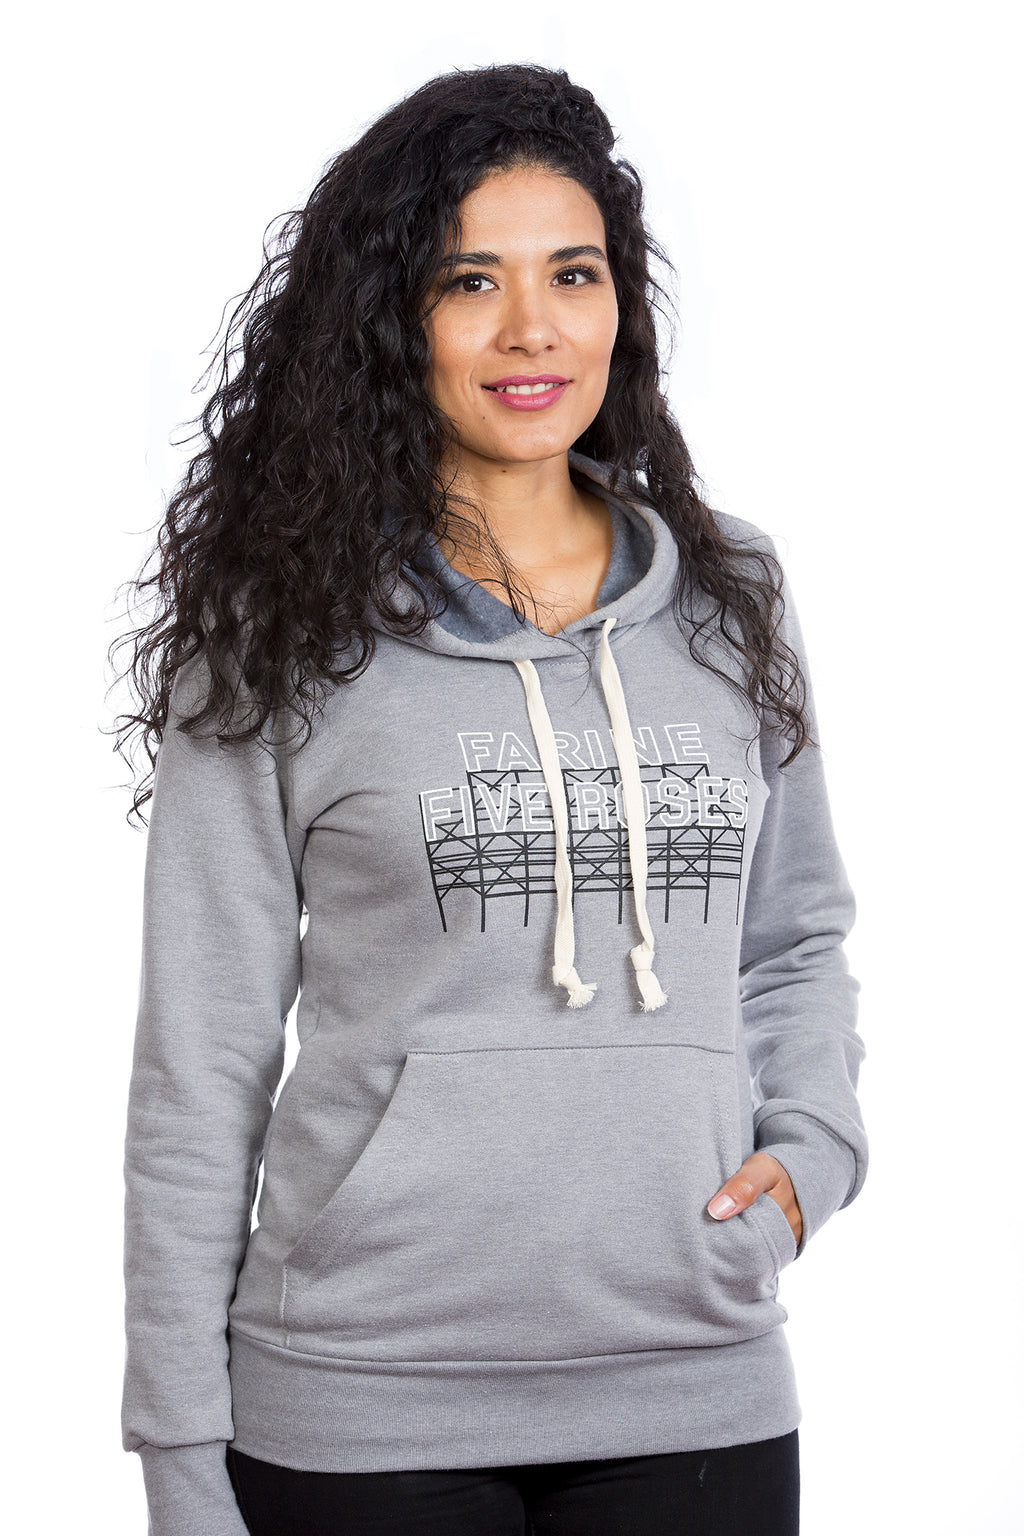 Women's Farine Five Roses Hoodie - Organic cotton